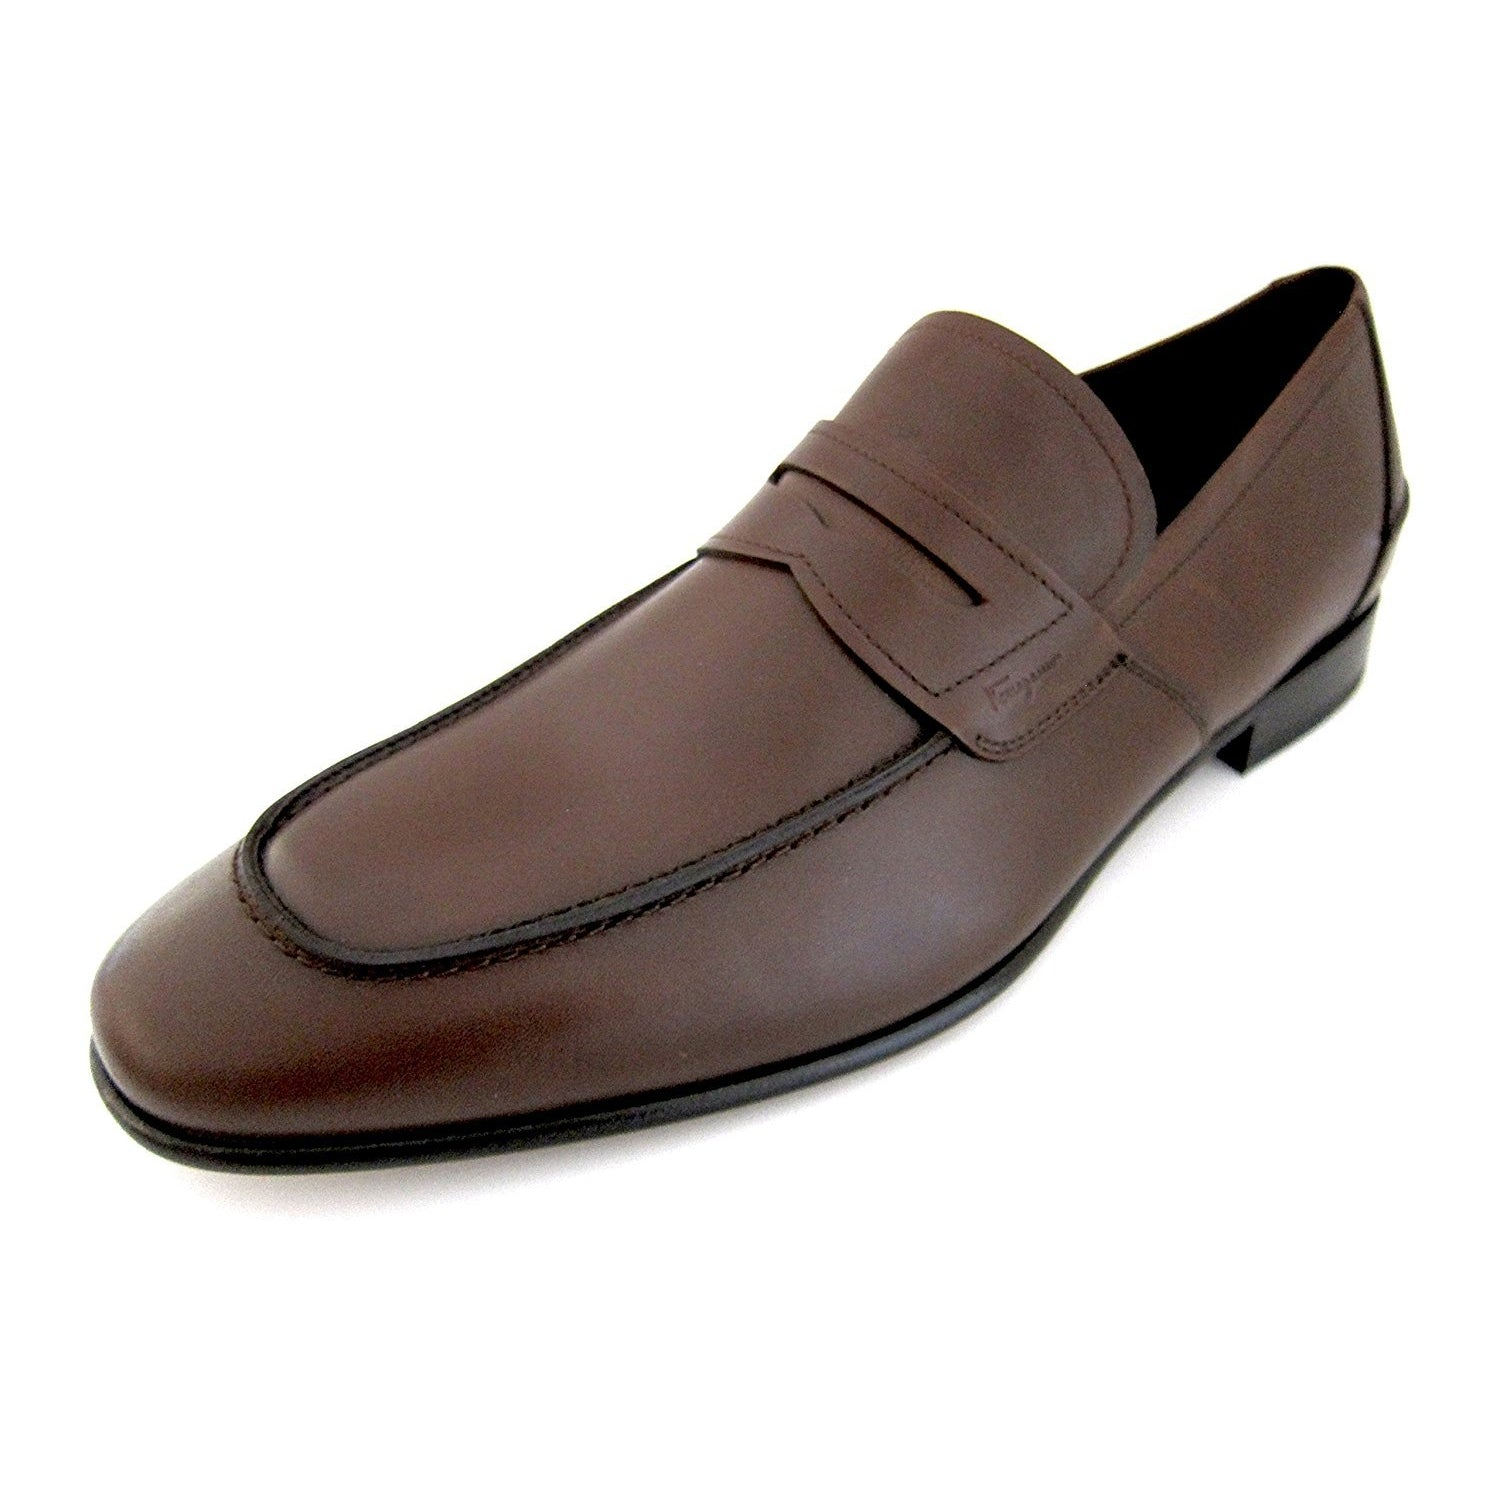 Salvatore Ferragamo Derry Mens Brown Leather Loafers Shoes Made In Italy